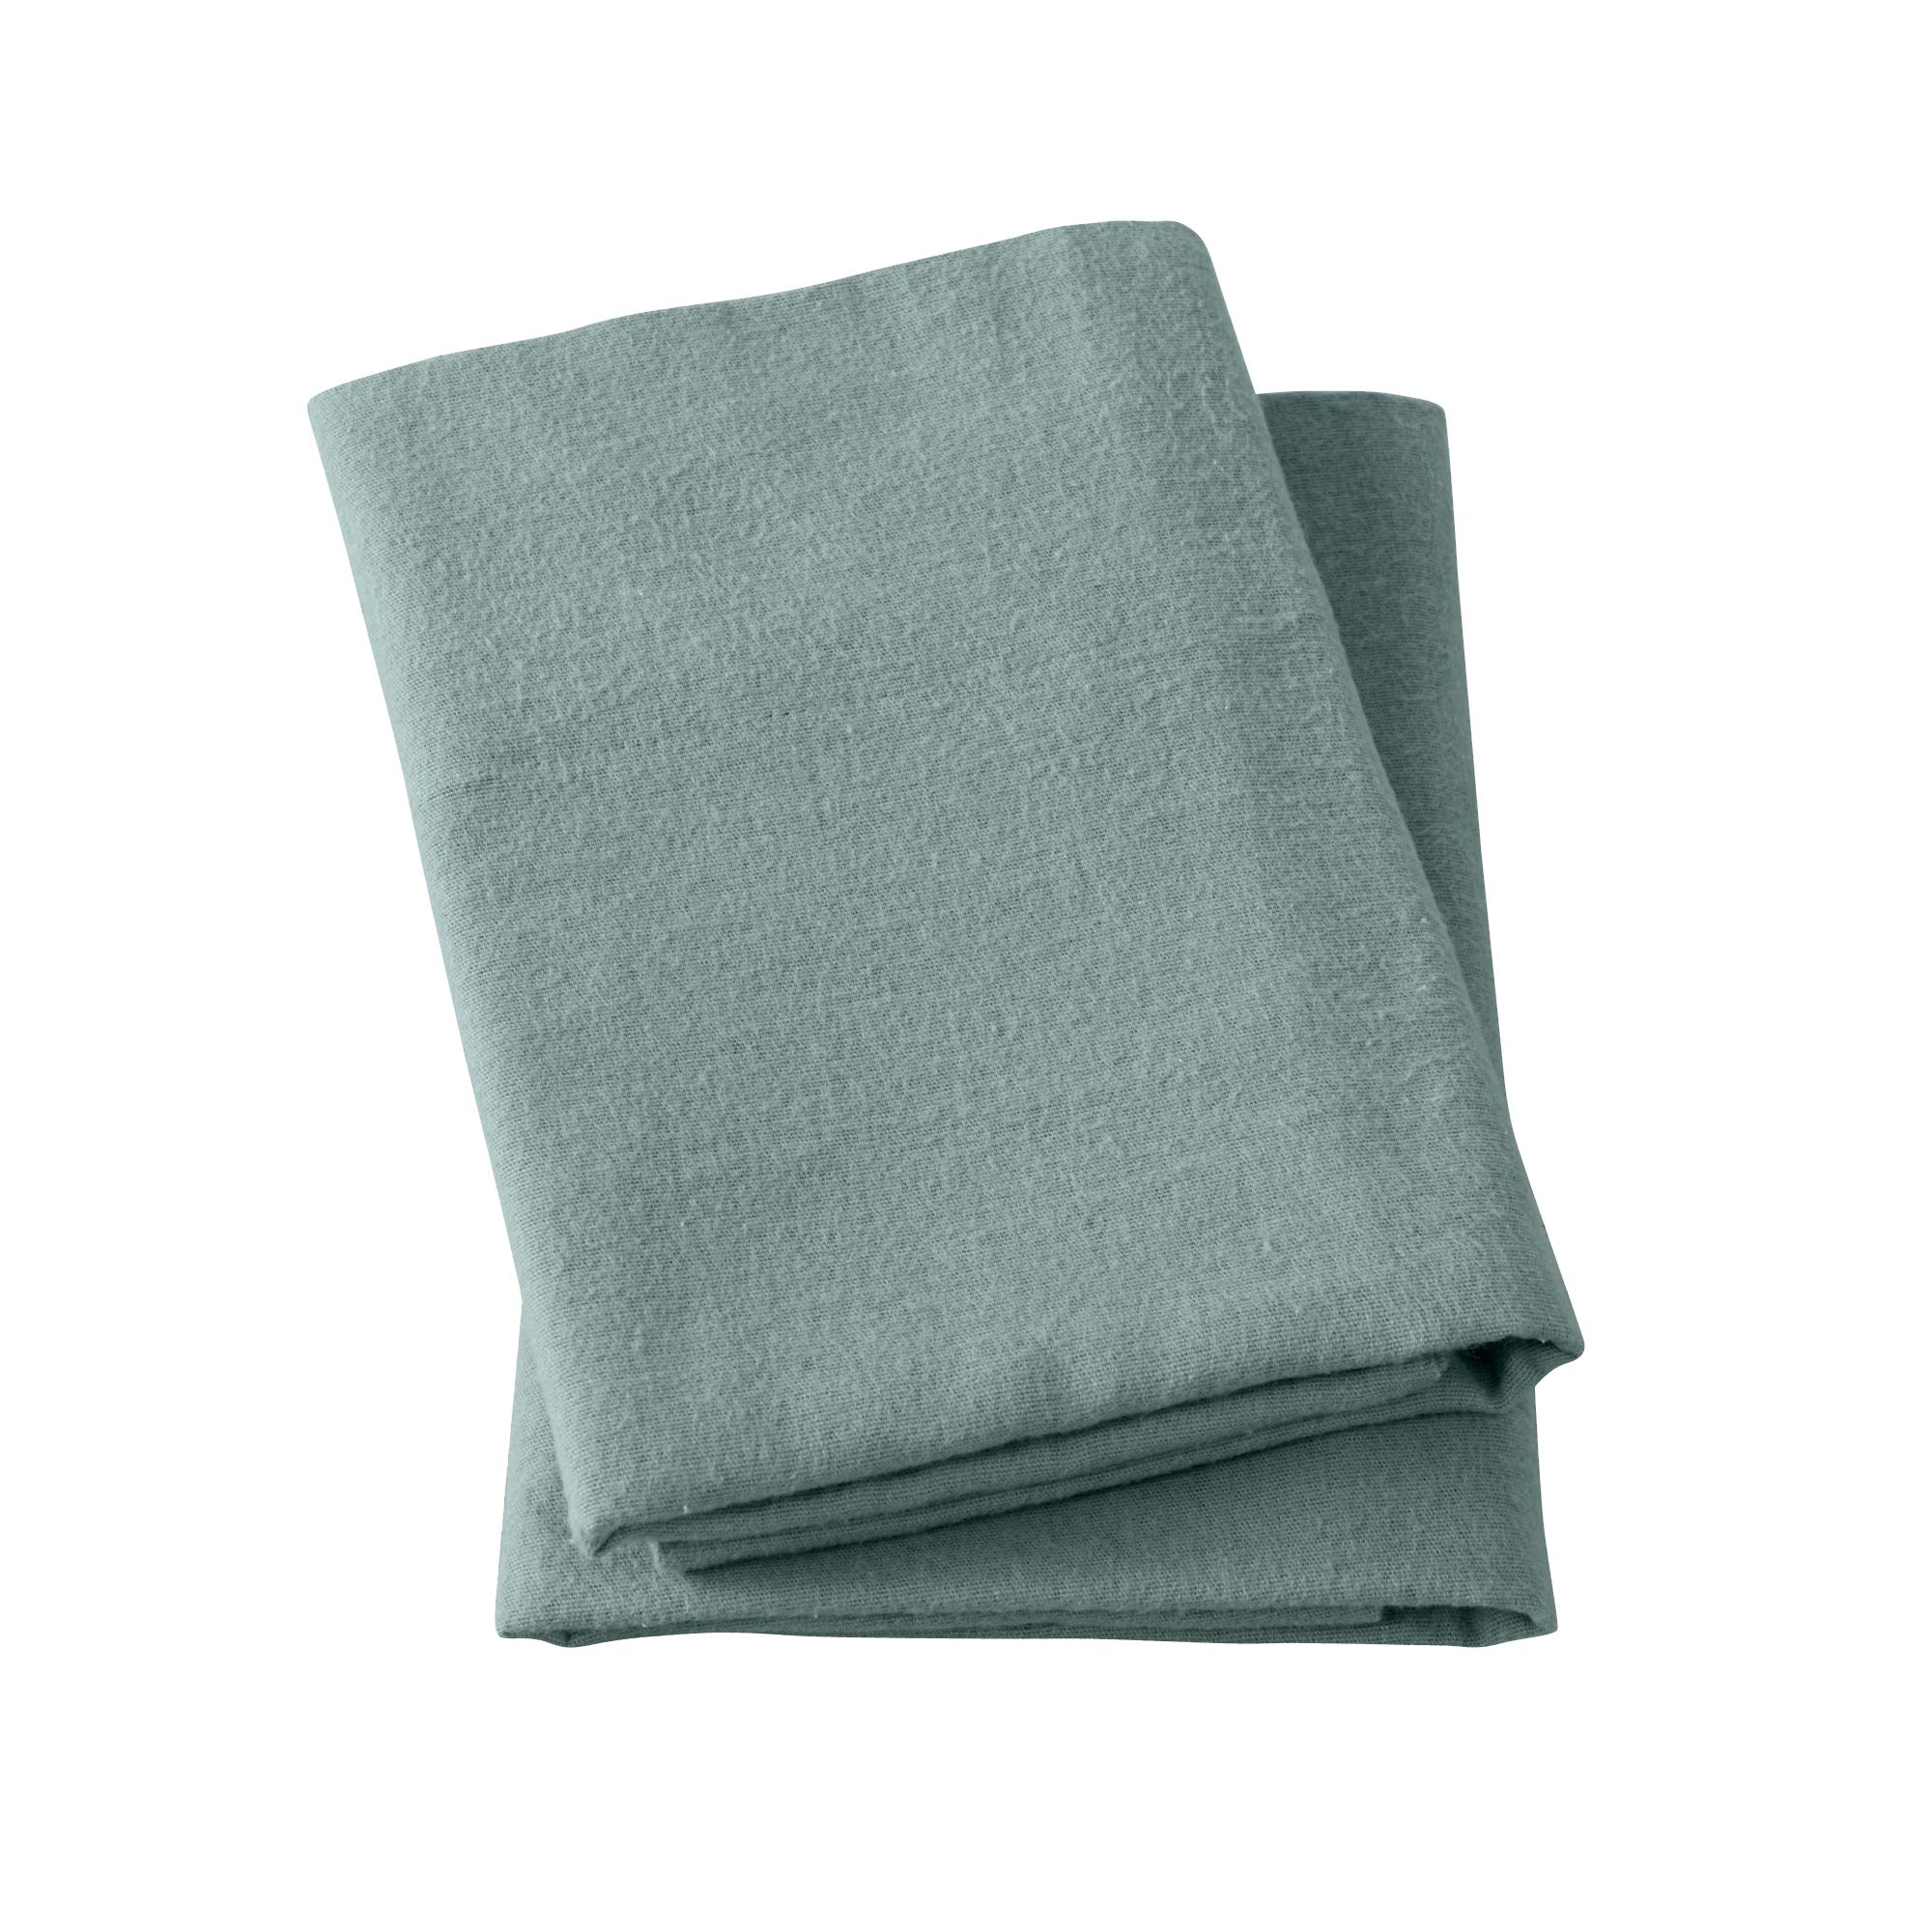 Great Bay Home Extra Soft 100% Turkish Cotton Flannel Pillowcase Set. Warm, Cozy, Lightweight, Luxury Winter Bed Pillowcases in Solid Colors. Nordic Collection Brand. (Standard, Thyme Green)